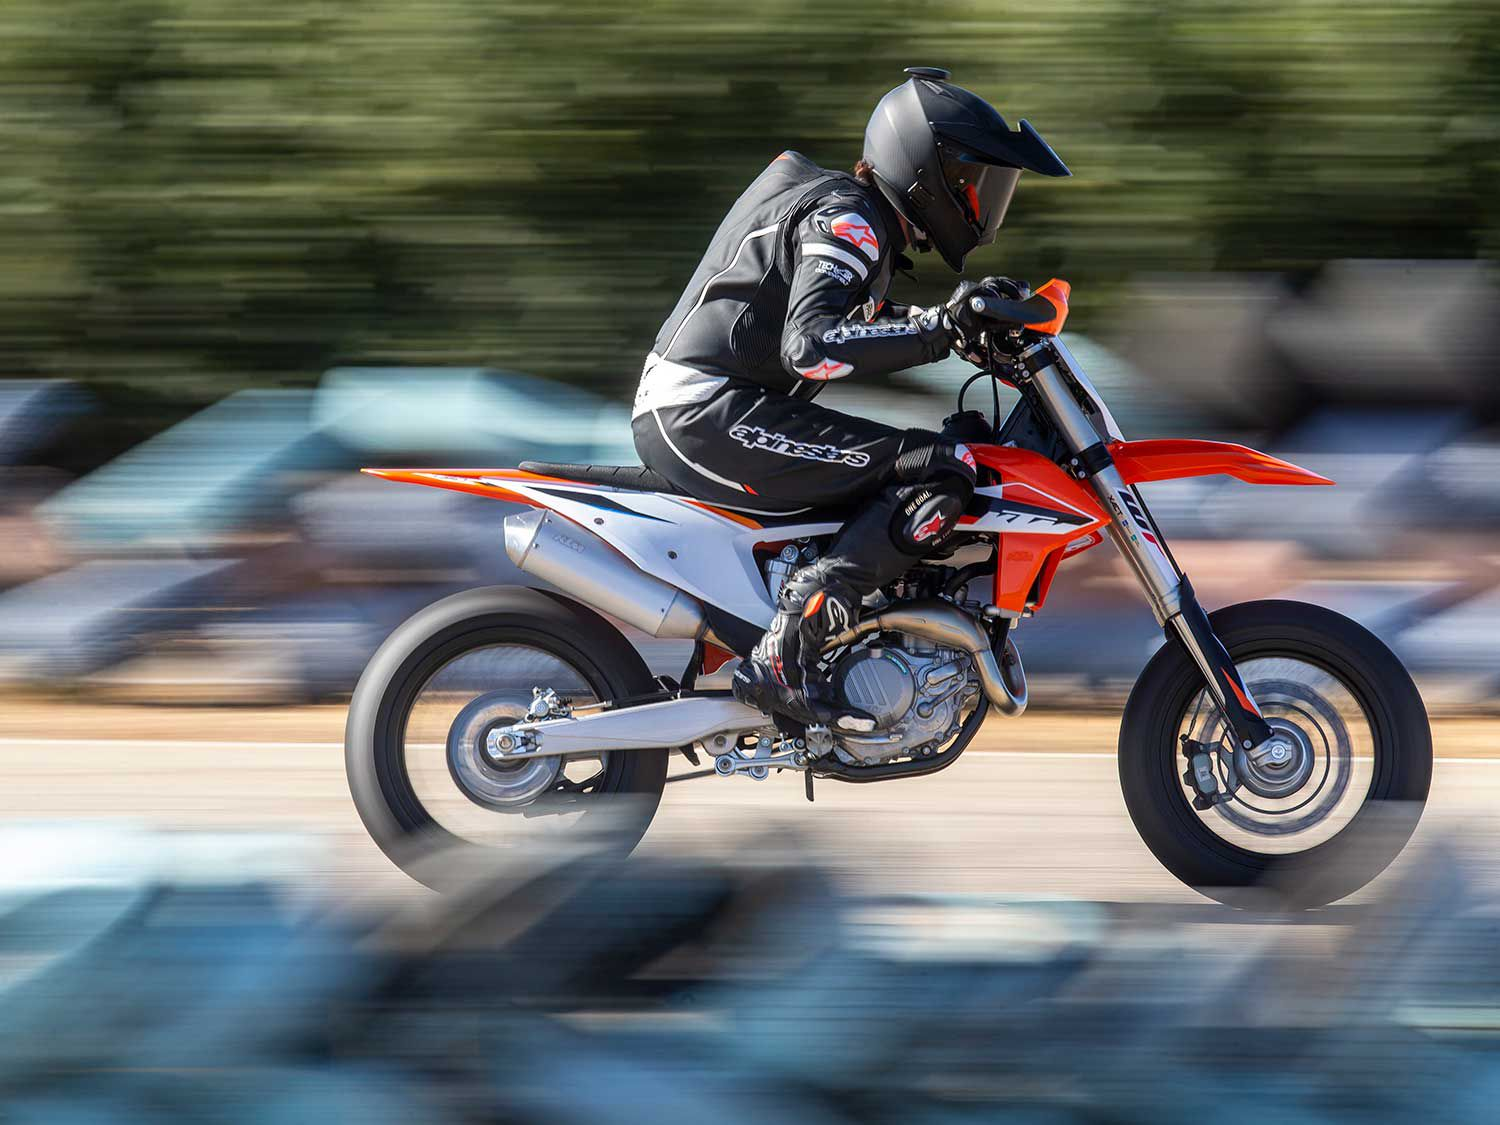 Supermoto riders who would rather spend their time riding rather than working on their homemade garage creation will appreciate the work KTM engineers did building a properly prepped and functional supermoto.